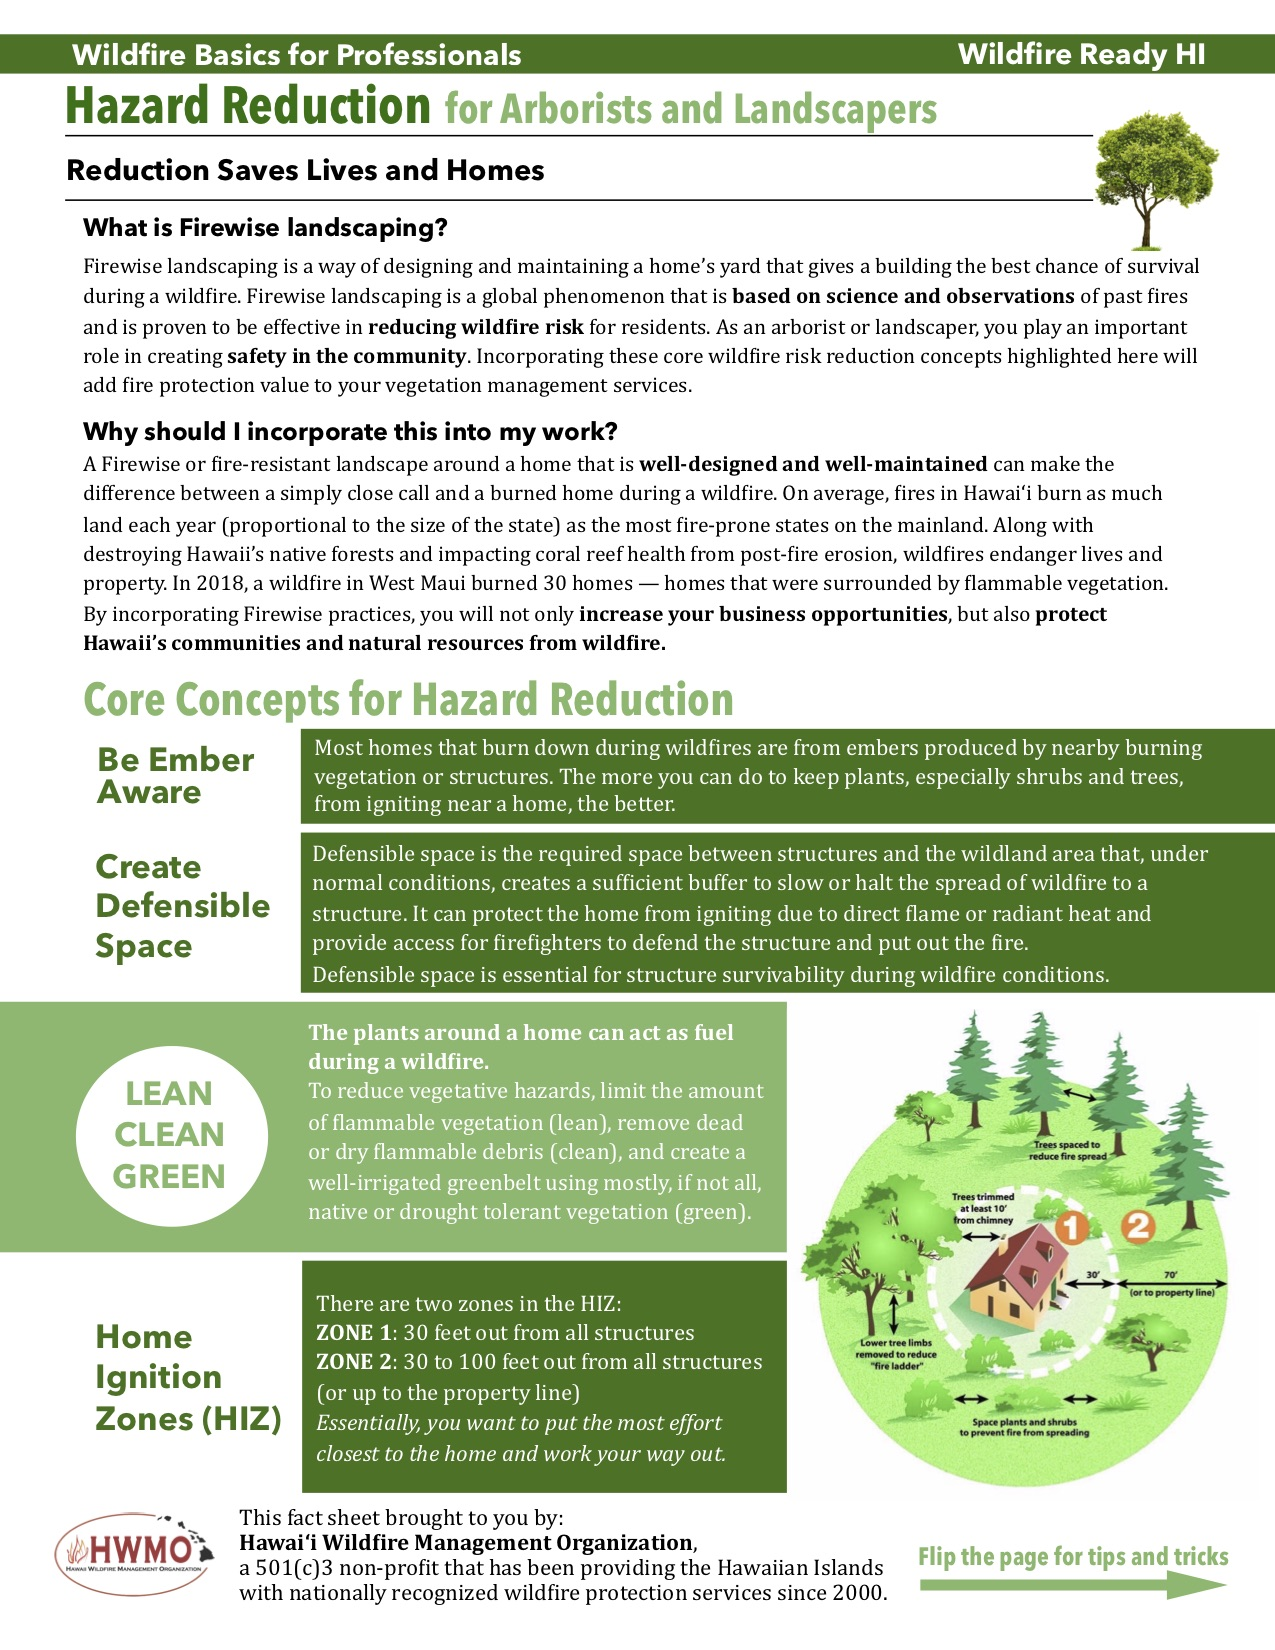 2019_06_30_Wildfire Basics for Professionals_Hazard Reduction for Arborists and Landscapers Fact Sheet FINAL copy.jpg